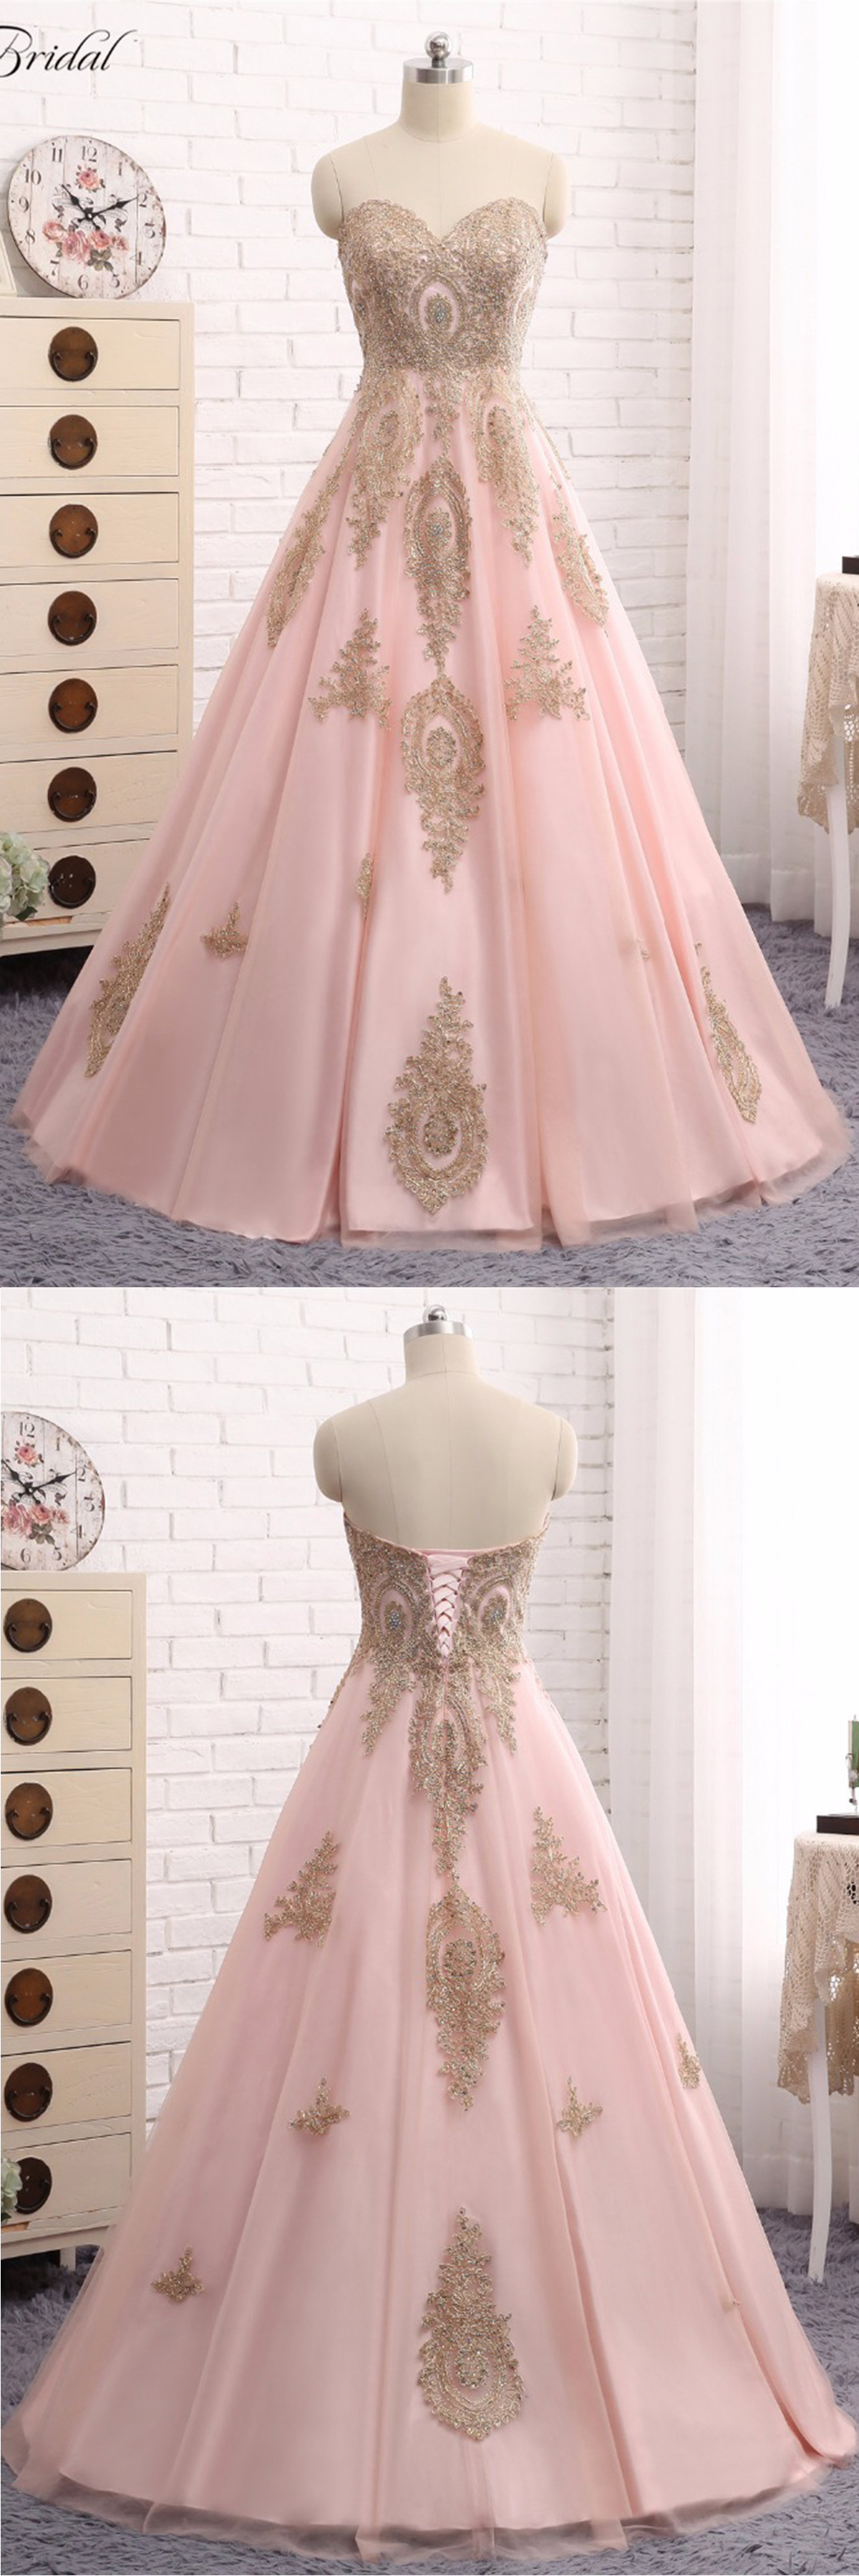 Pink tulle sweetheart neckline long gold lace strapless evening ...